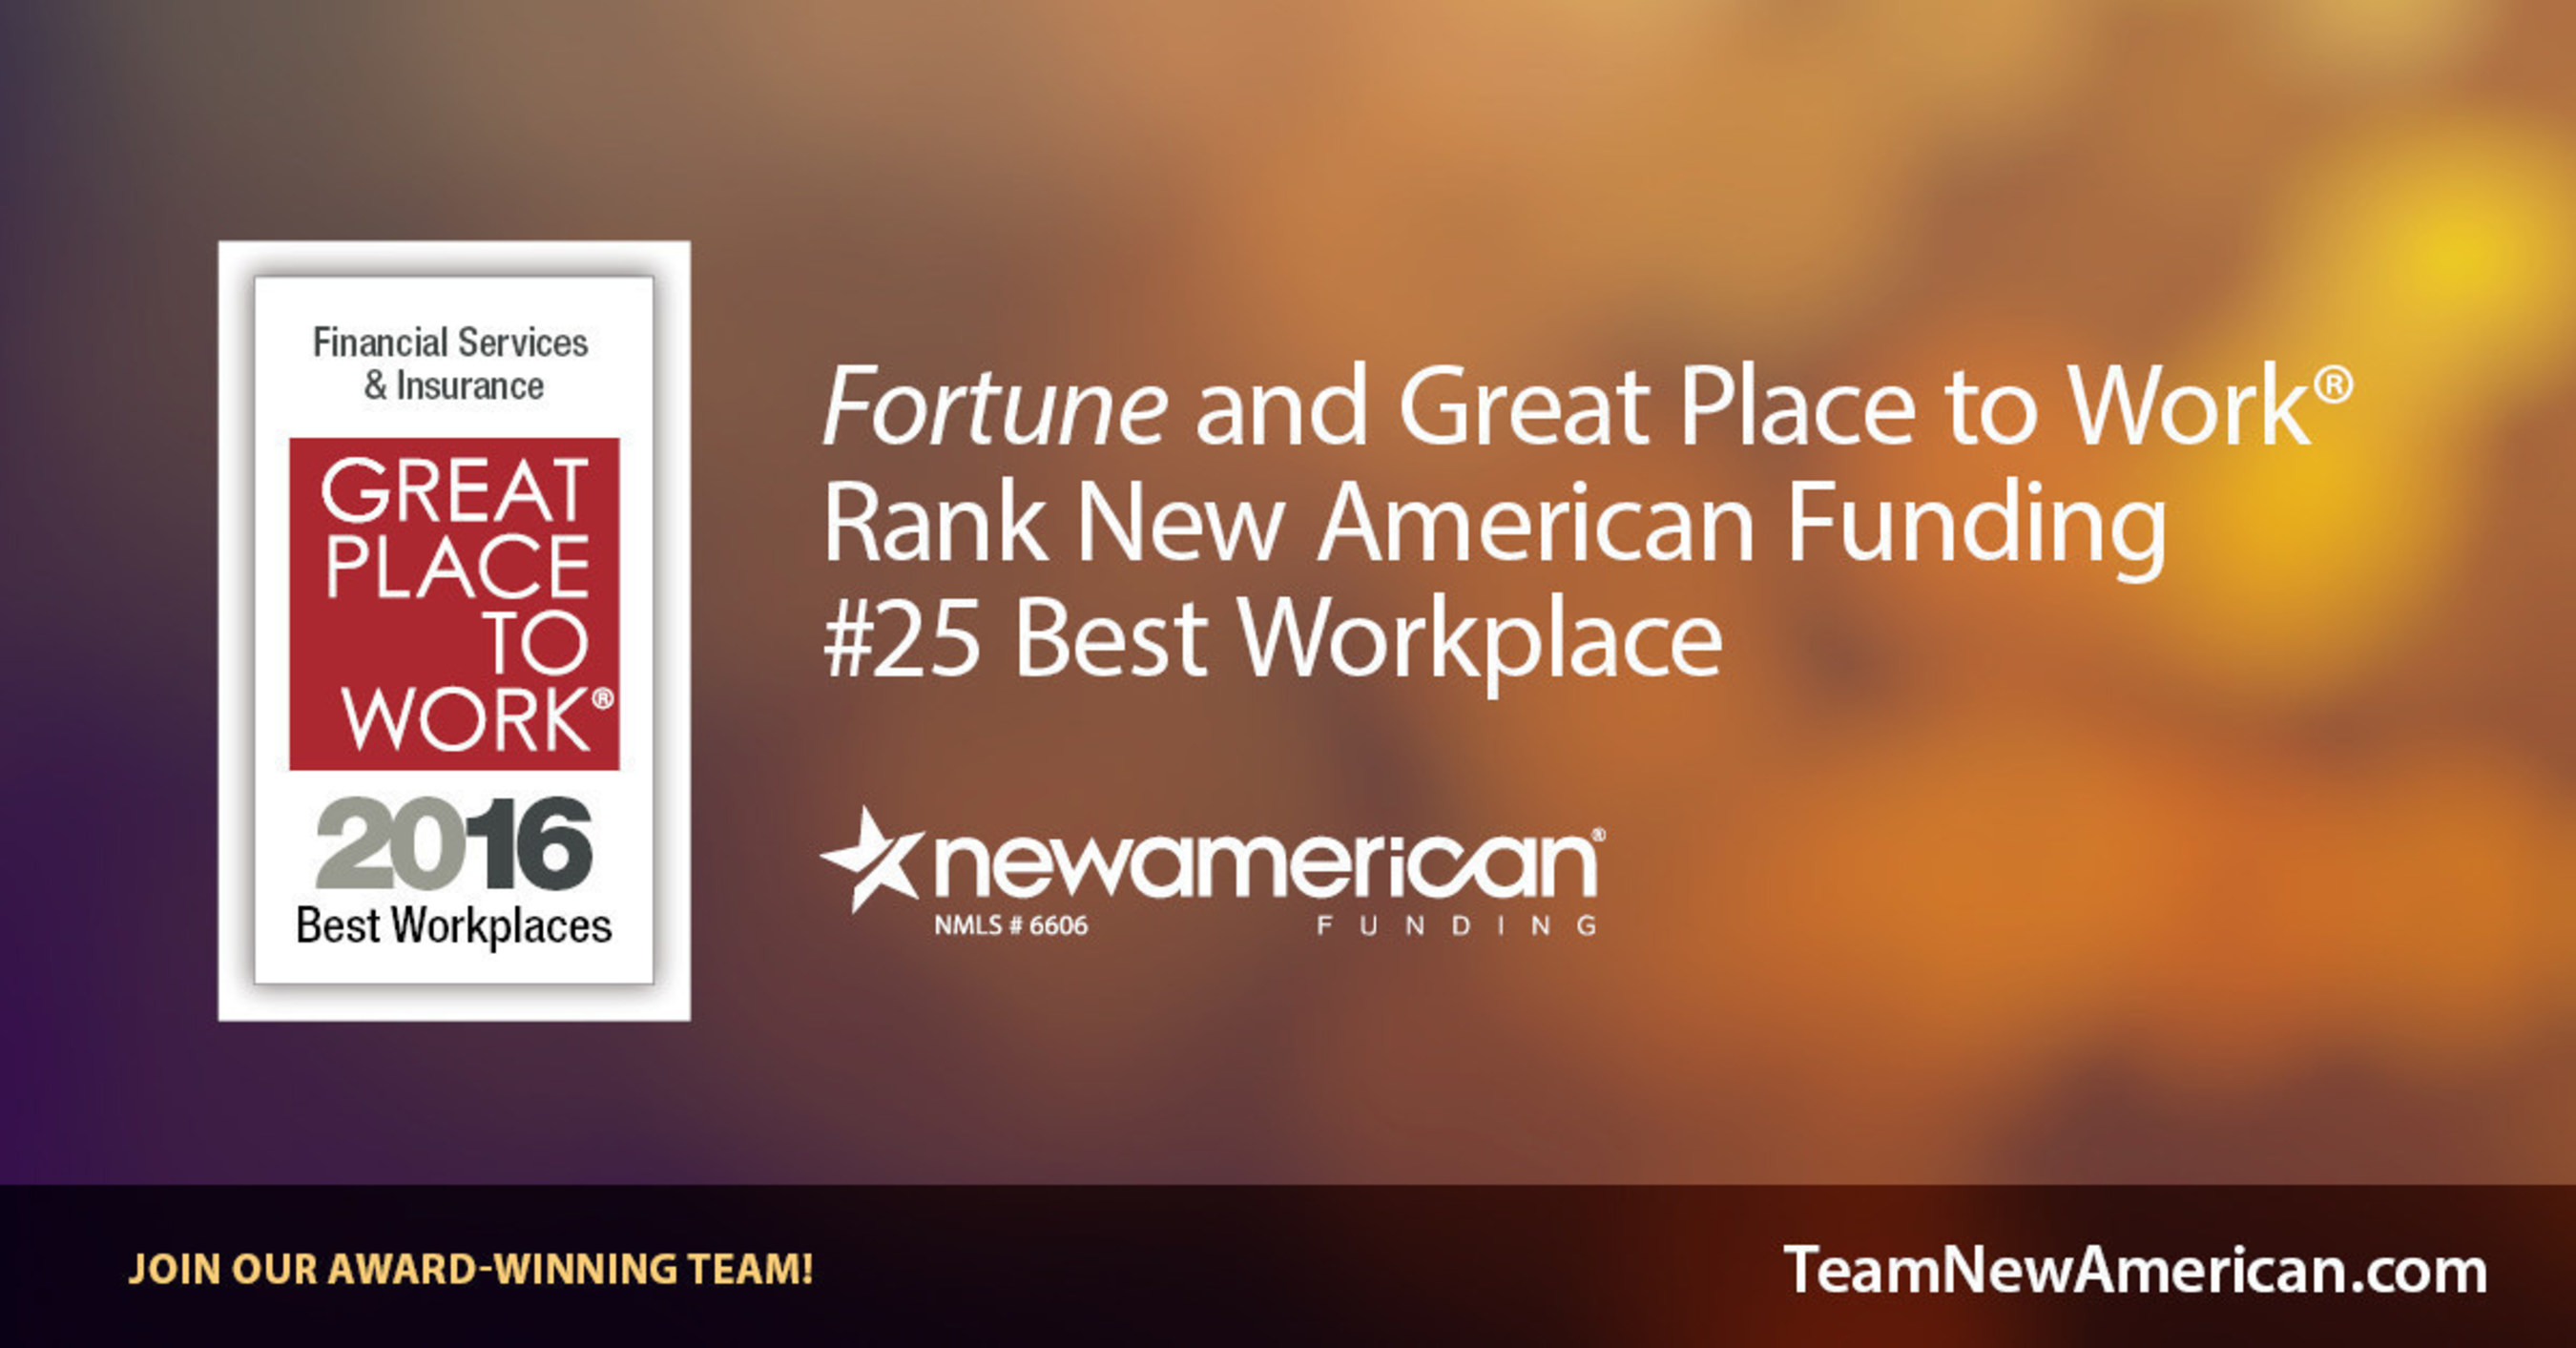 Fortune Names New American Funding #25 Best Workplace